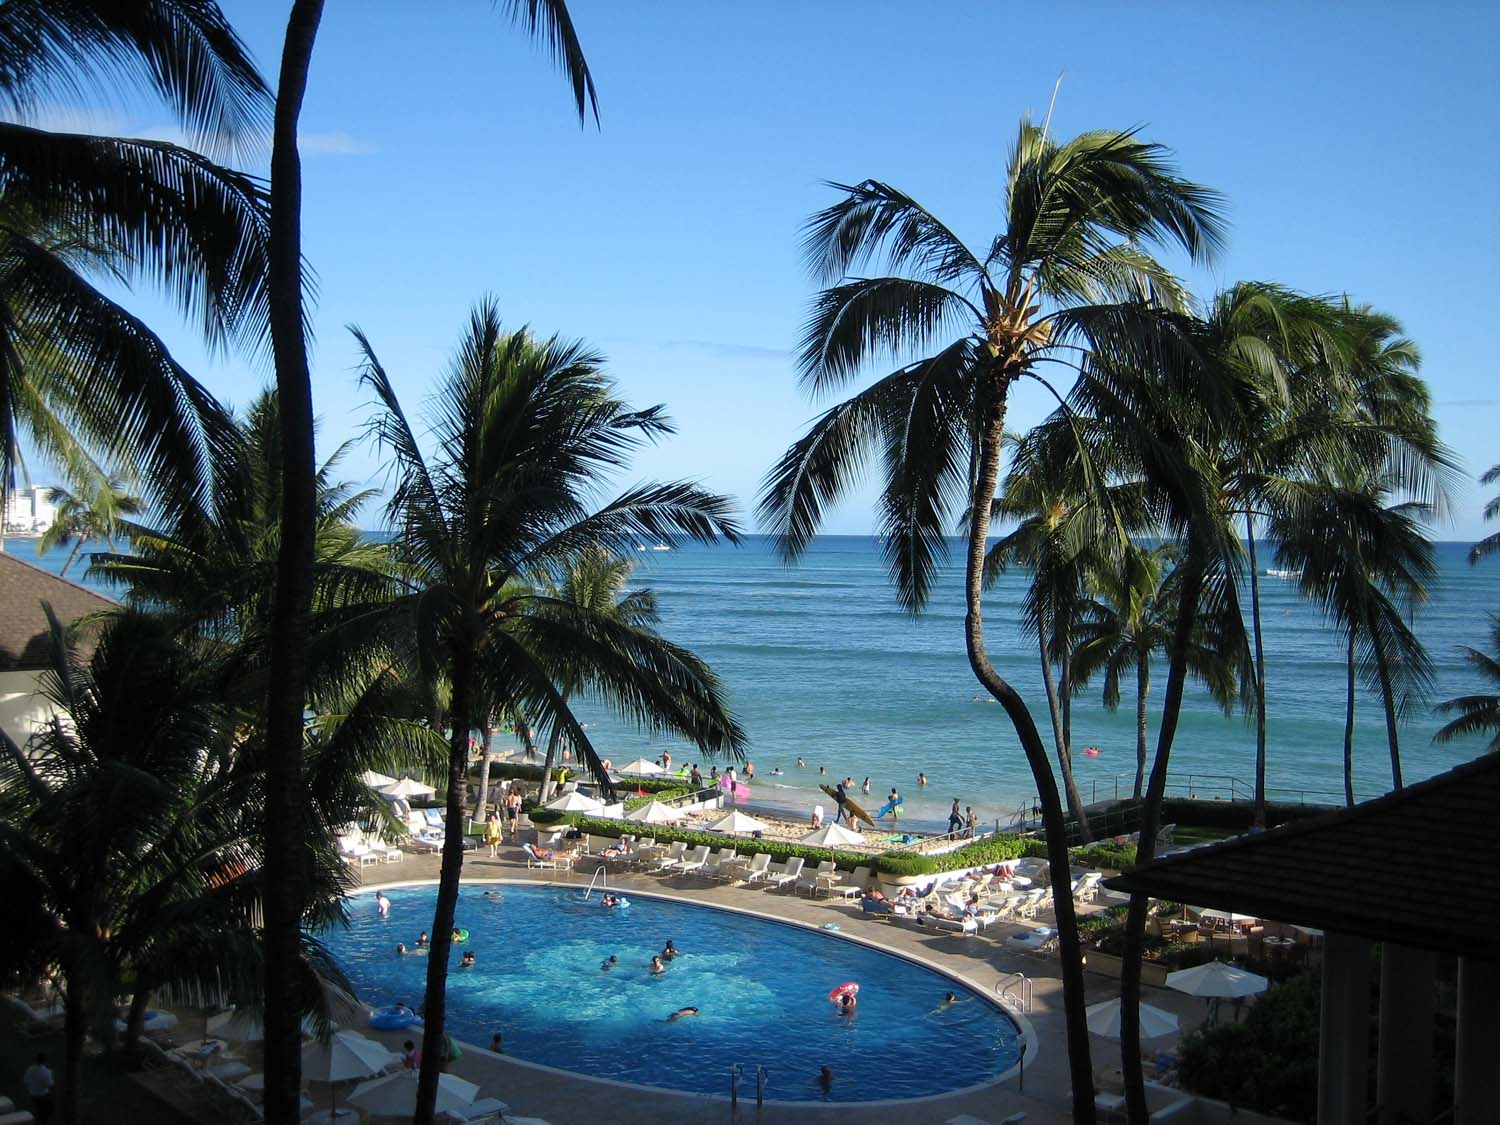 HALEKULANI HOTEL  Eye Awards: The World's best luxury hotels f0097073 15461094